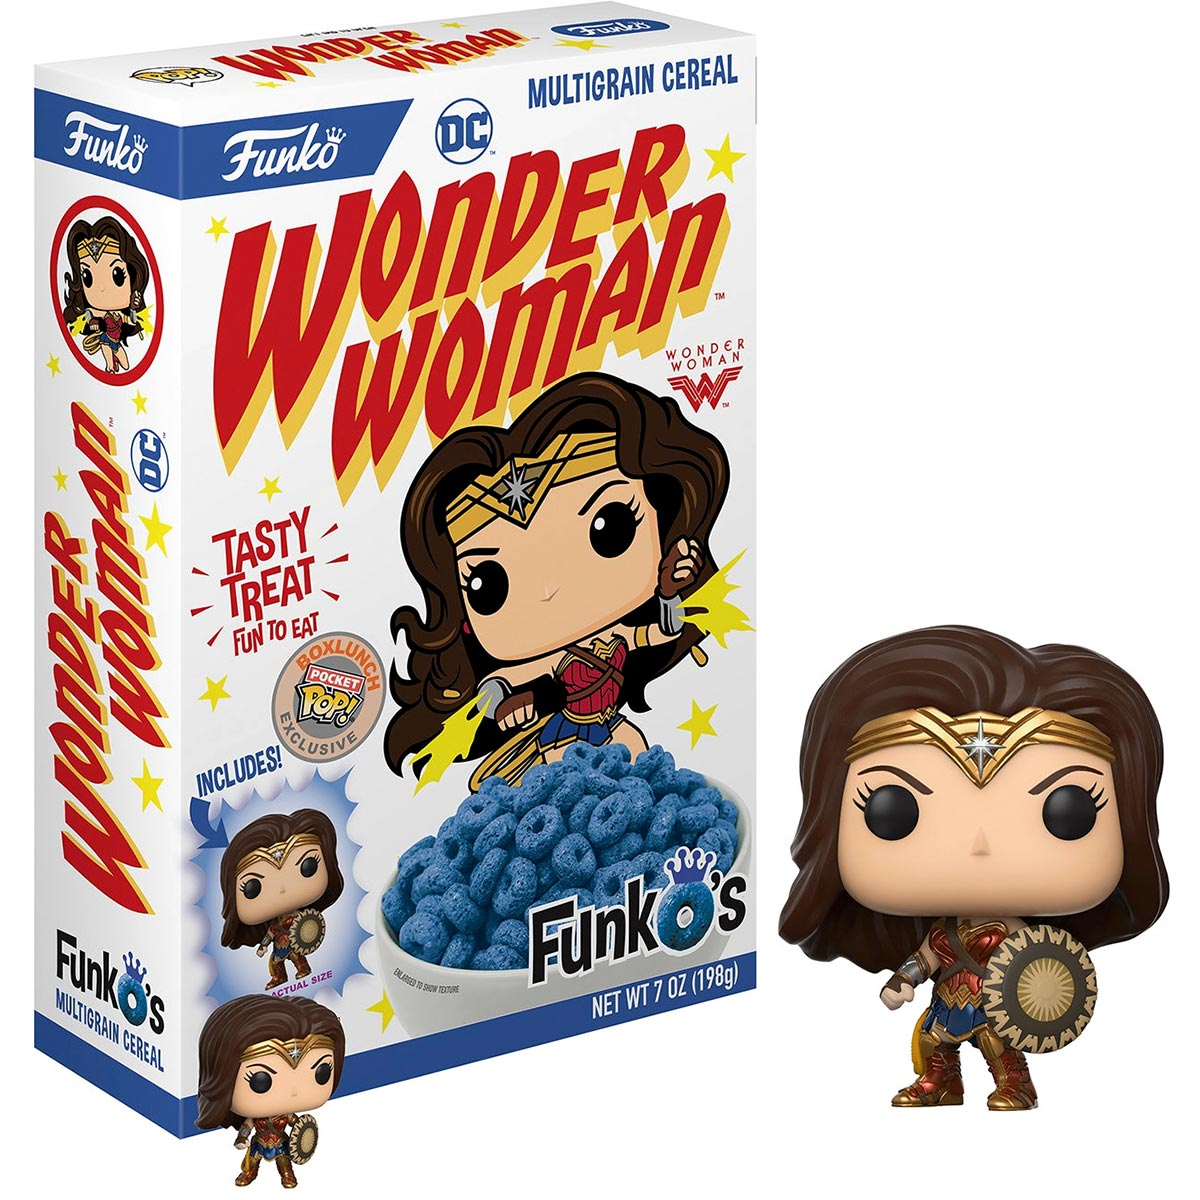 FunkO's Wonder Woman Cereal With Pocket Pop